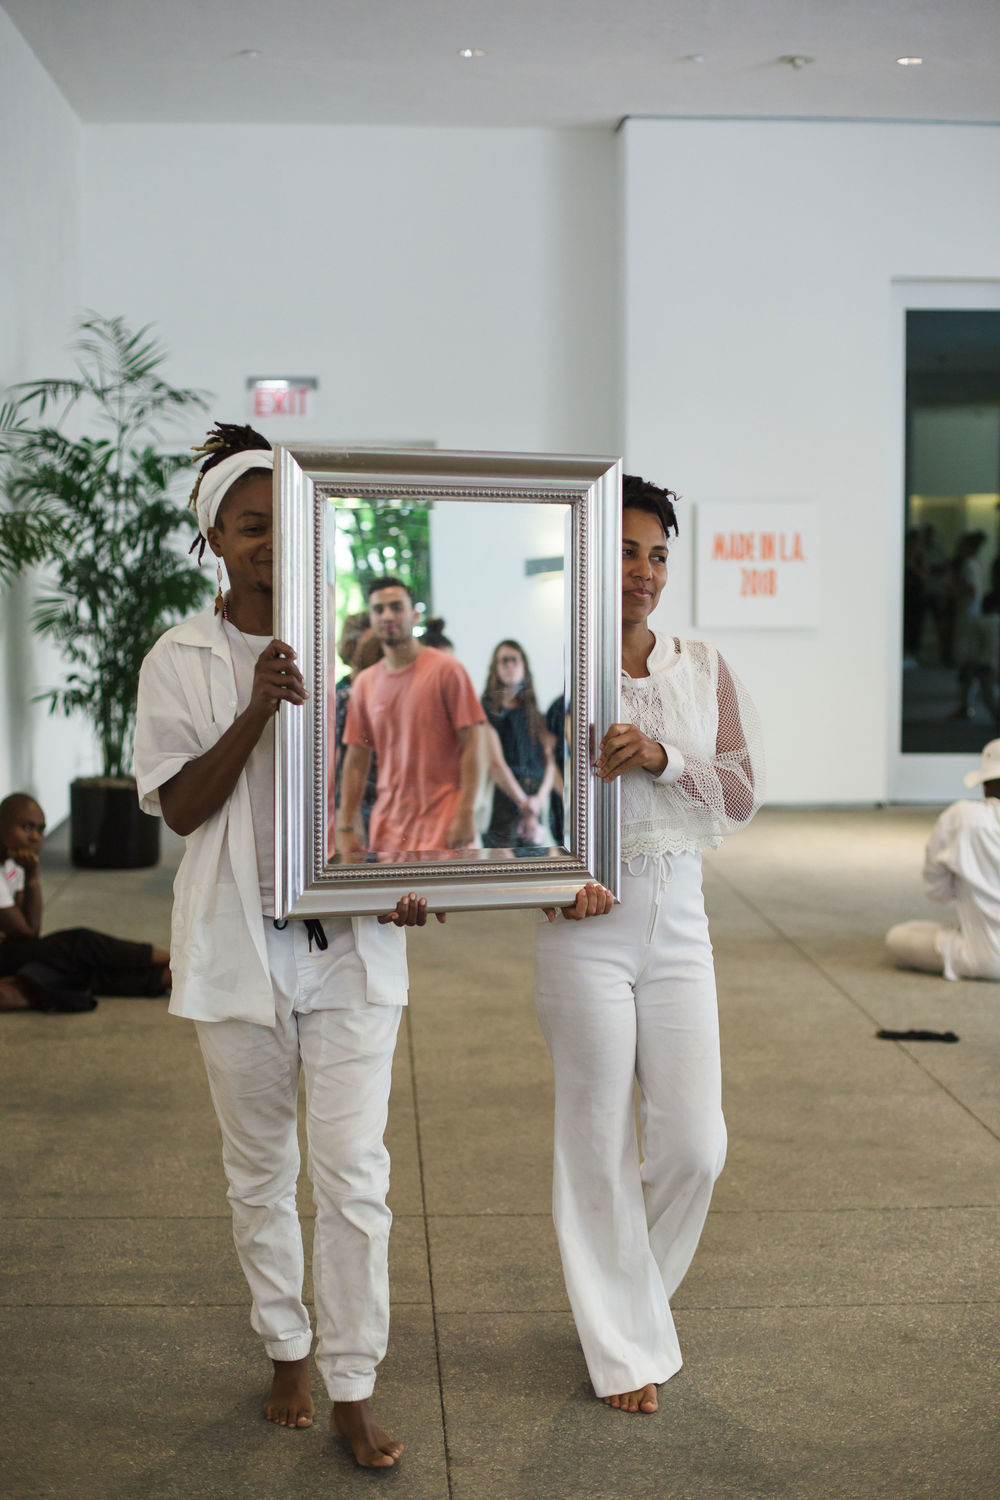 taisha paggett and WXPT, breathingholdinglistening practice, in conjunction with Made in L.A. 2018, Hammer Museum, Los Angeles, September 1, 2018.